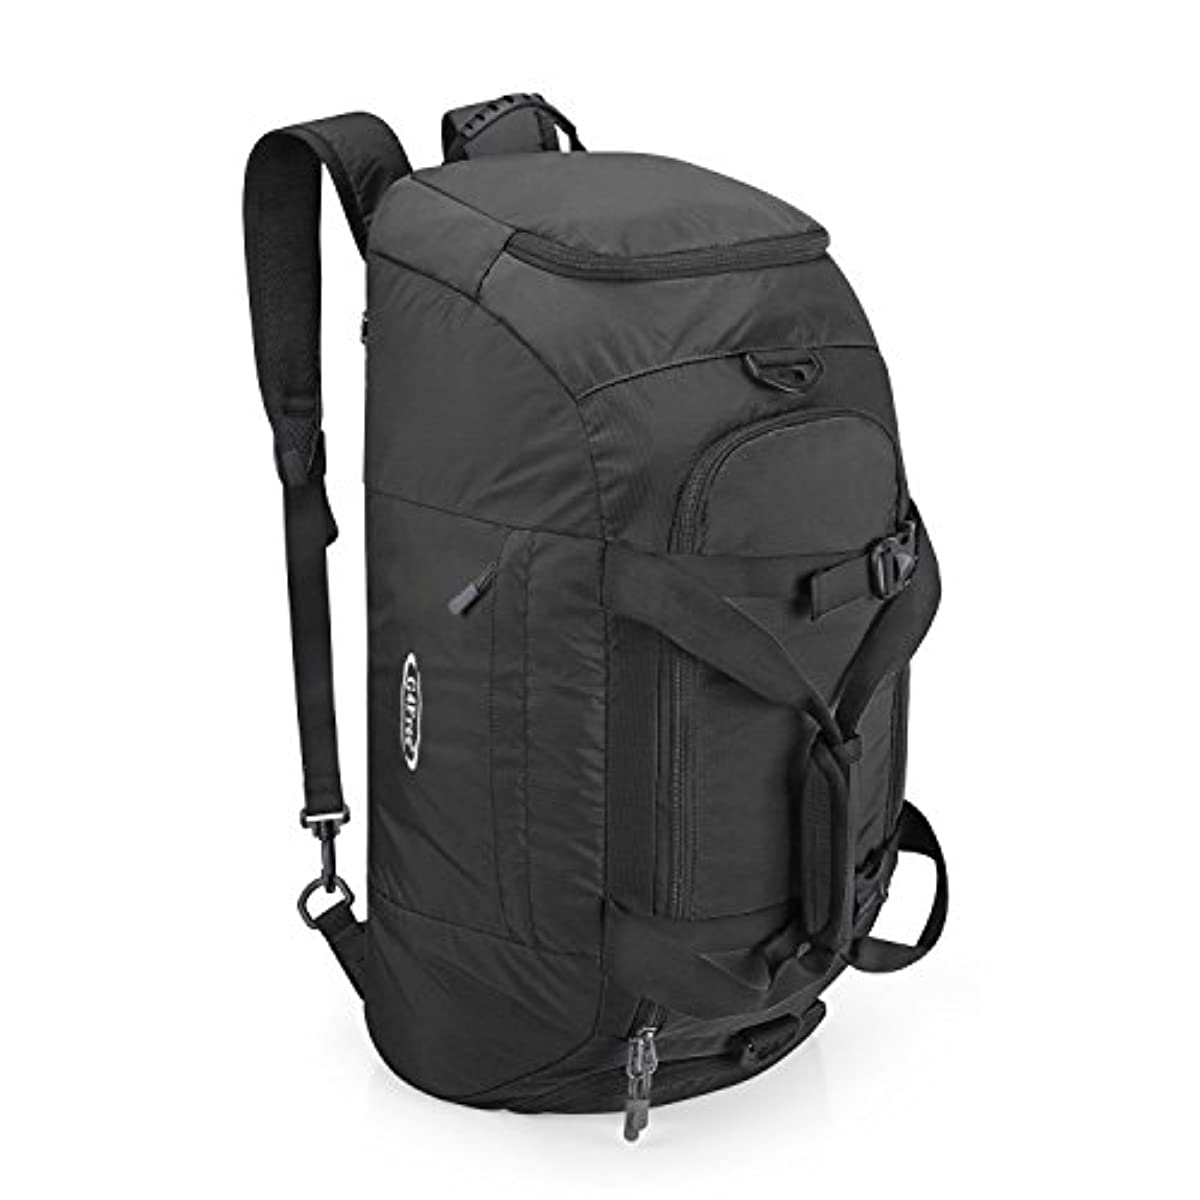 4e04042523 Details about G4Free 3-Way Travel Duffel Backpack 40L Large Luggage Gym  Backpack Sports Bag Ou